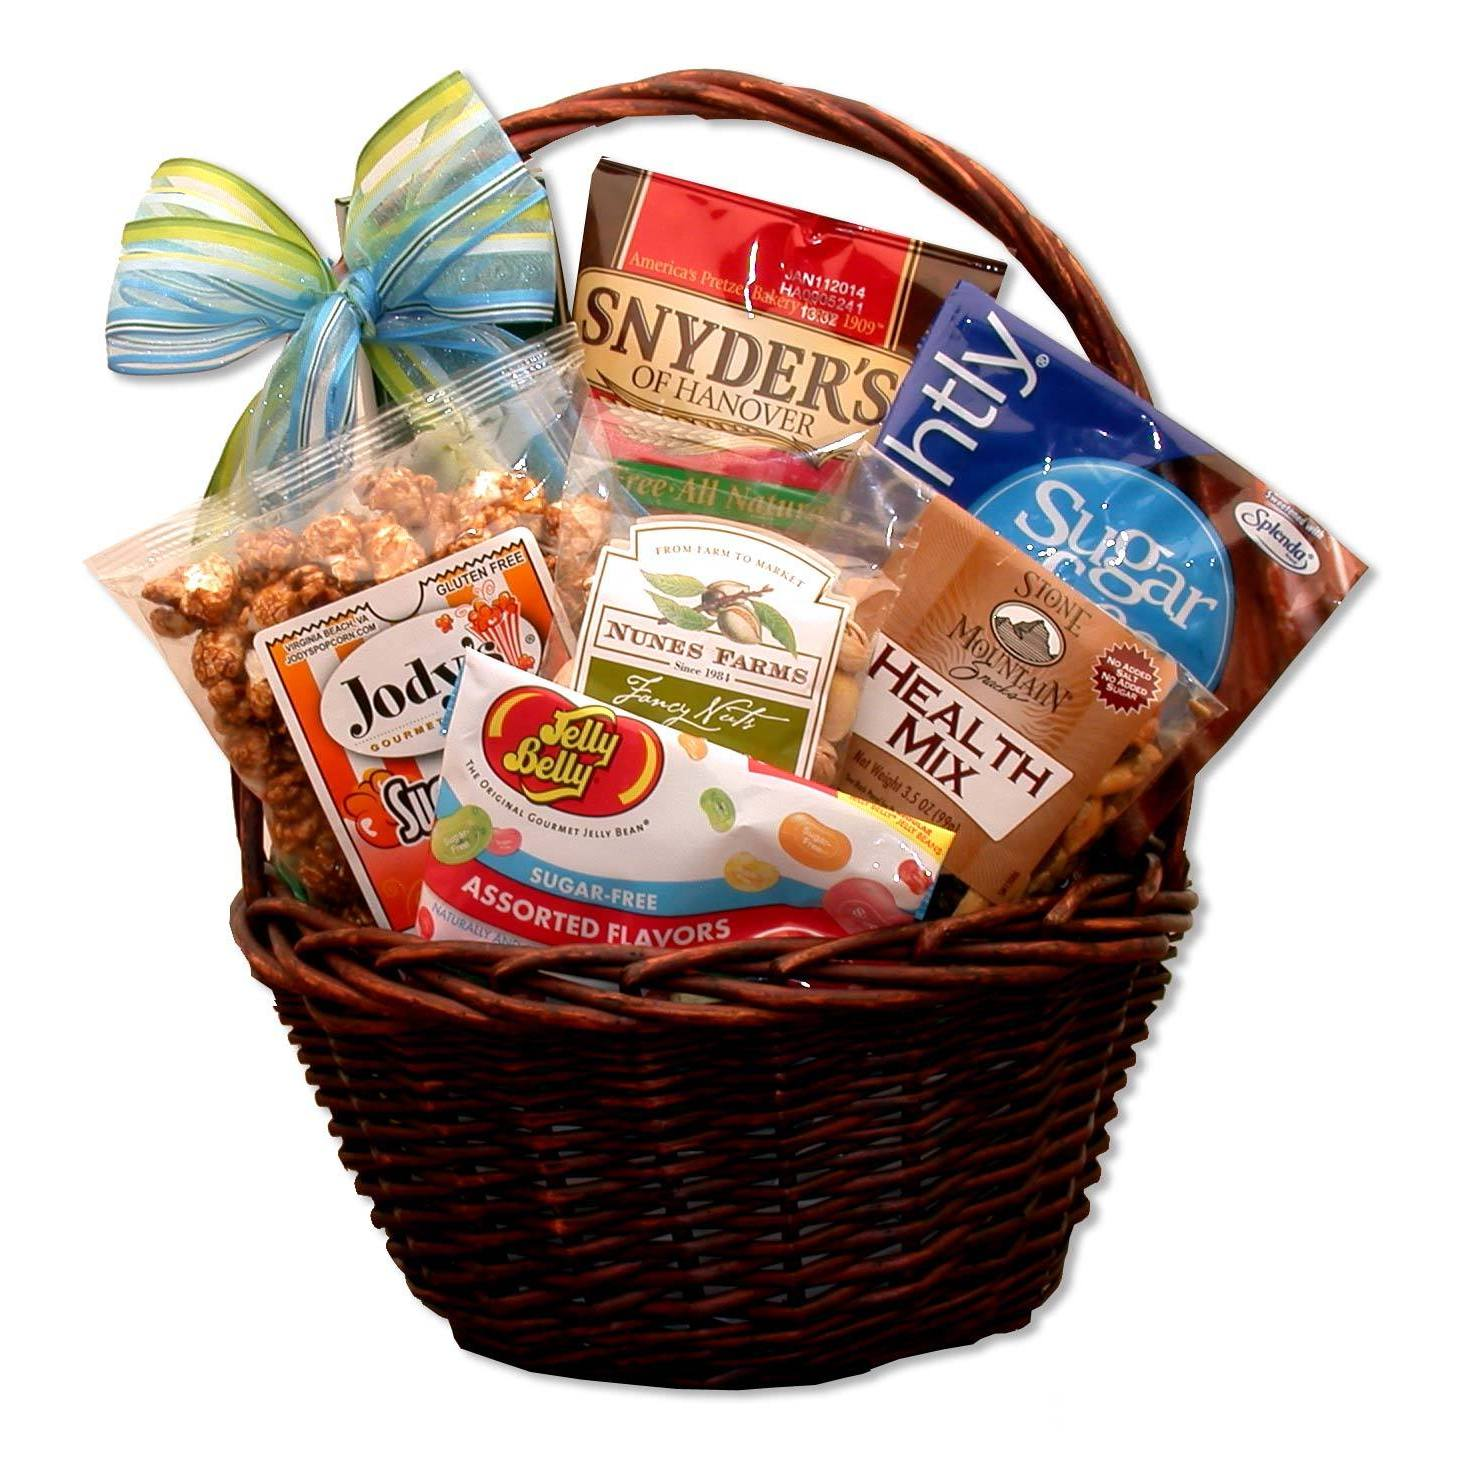 Sugar free gift basket free shipping on orders over 45 sugar free gift basket free shipping on orders over 45 overstock 17442775 negle Images